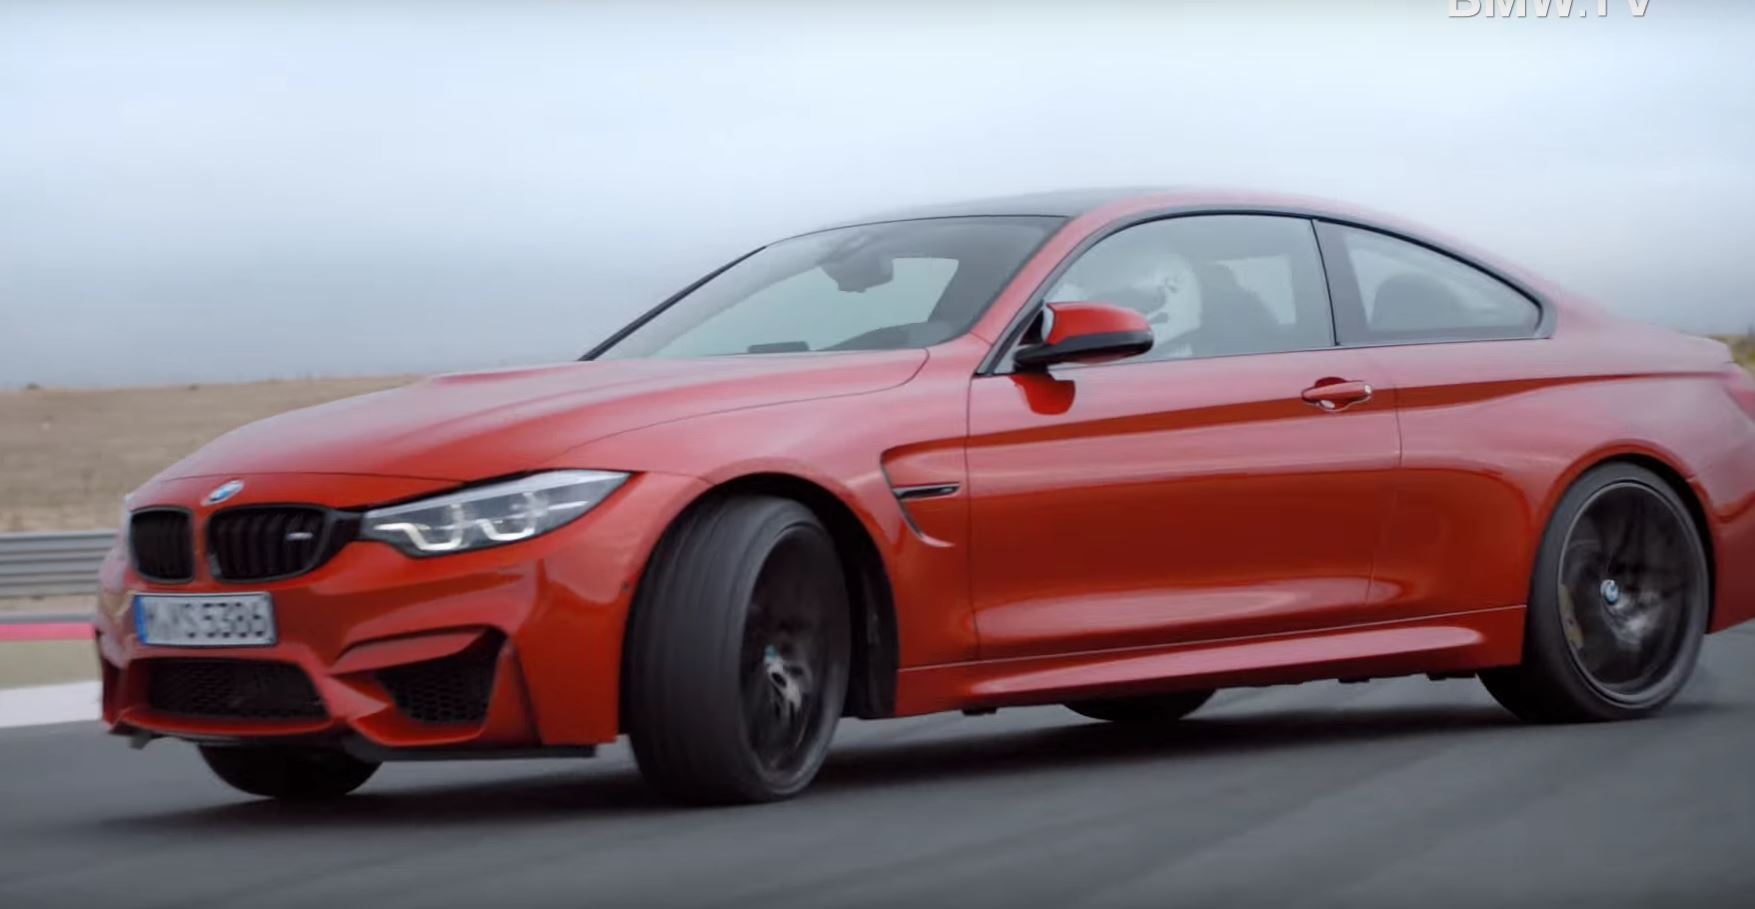 2018 bmw m4 facelift coupe and cabrio hit the track in official videos